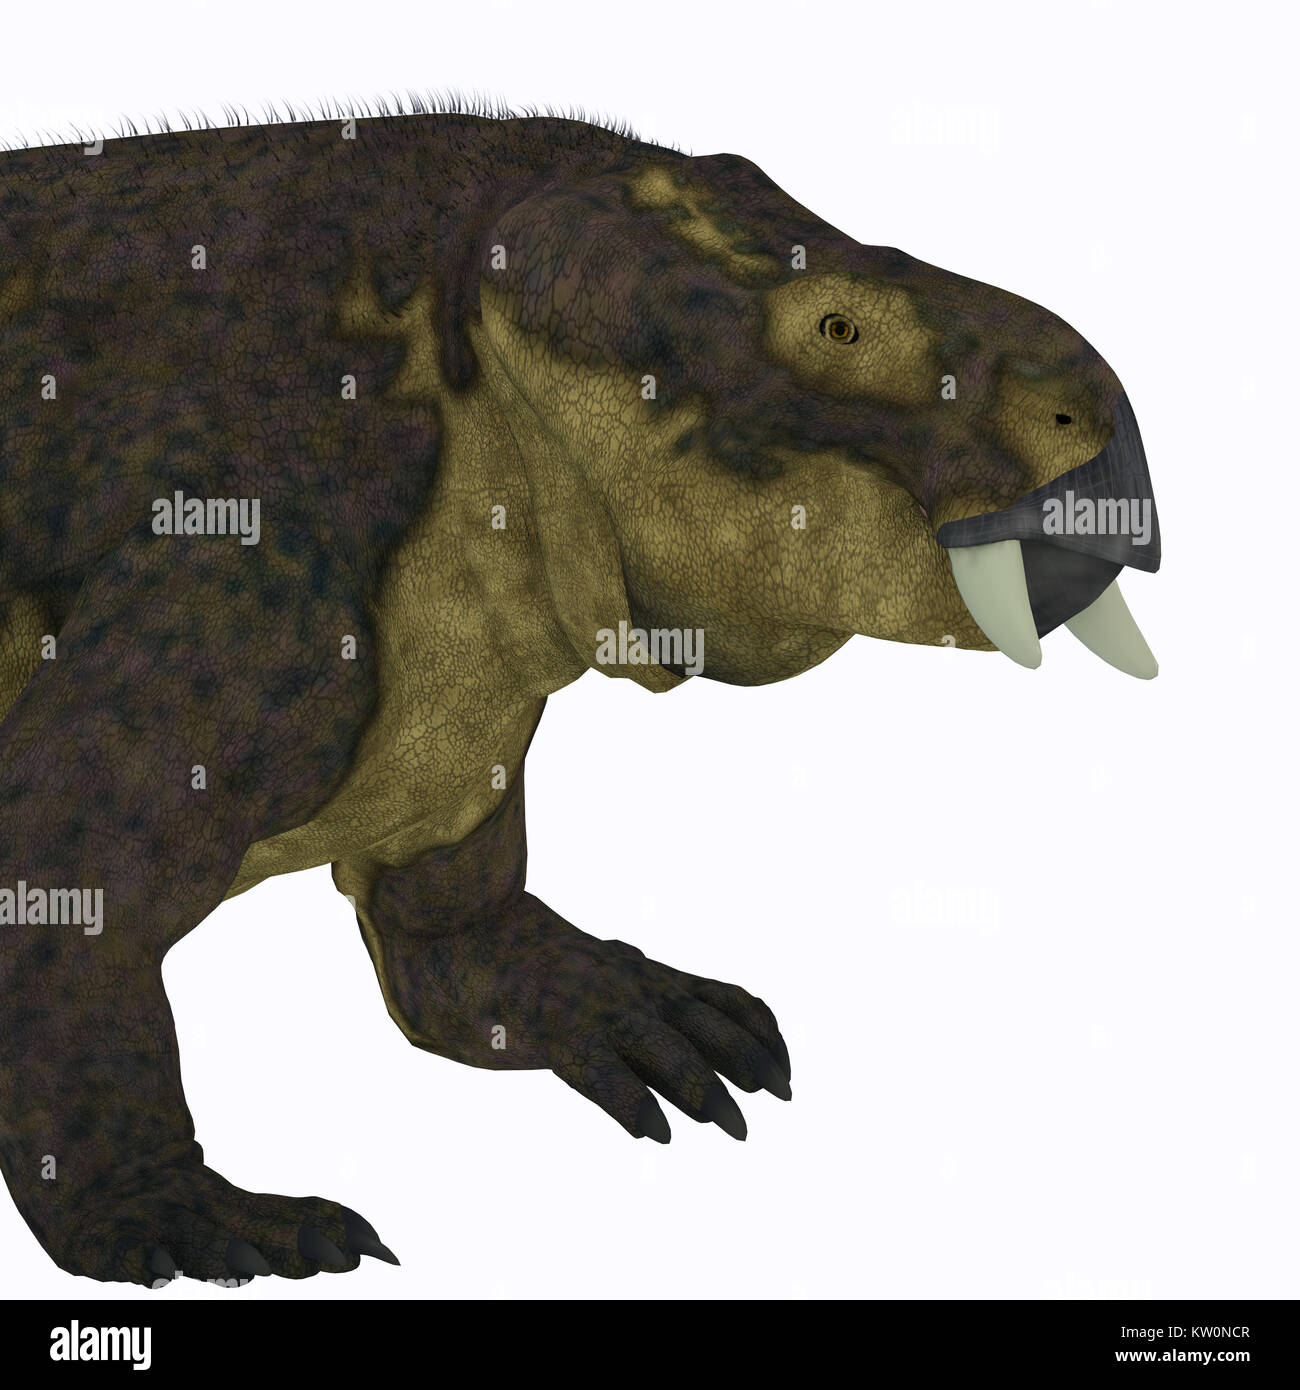 Placerias Dinosaur Head - Placerias was a herbivorous dicynodont dinosaur that lived in Arizona, USA in the Triassic - Stock Image